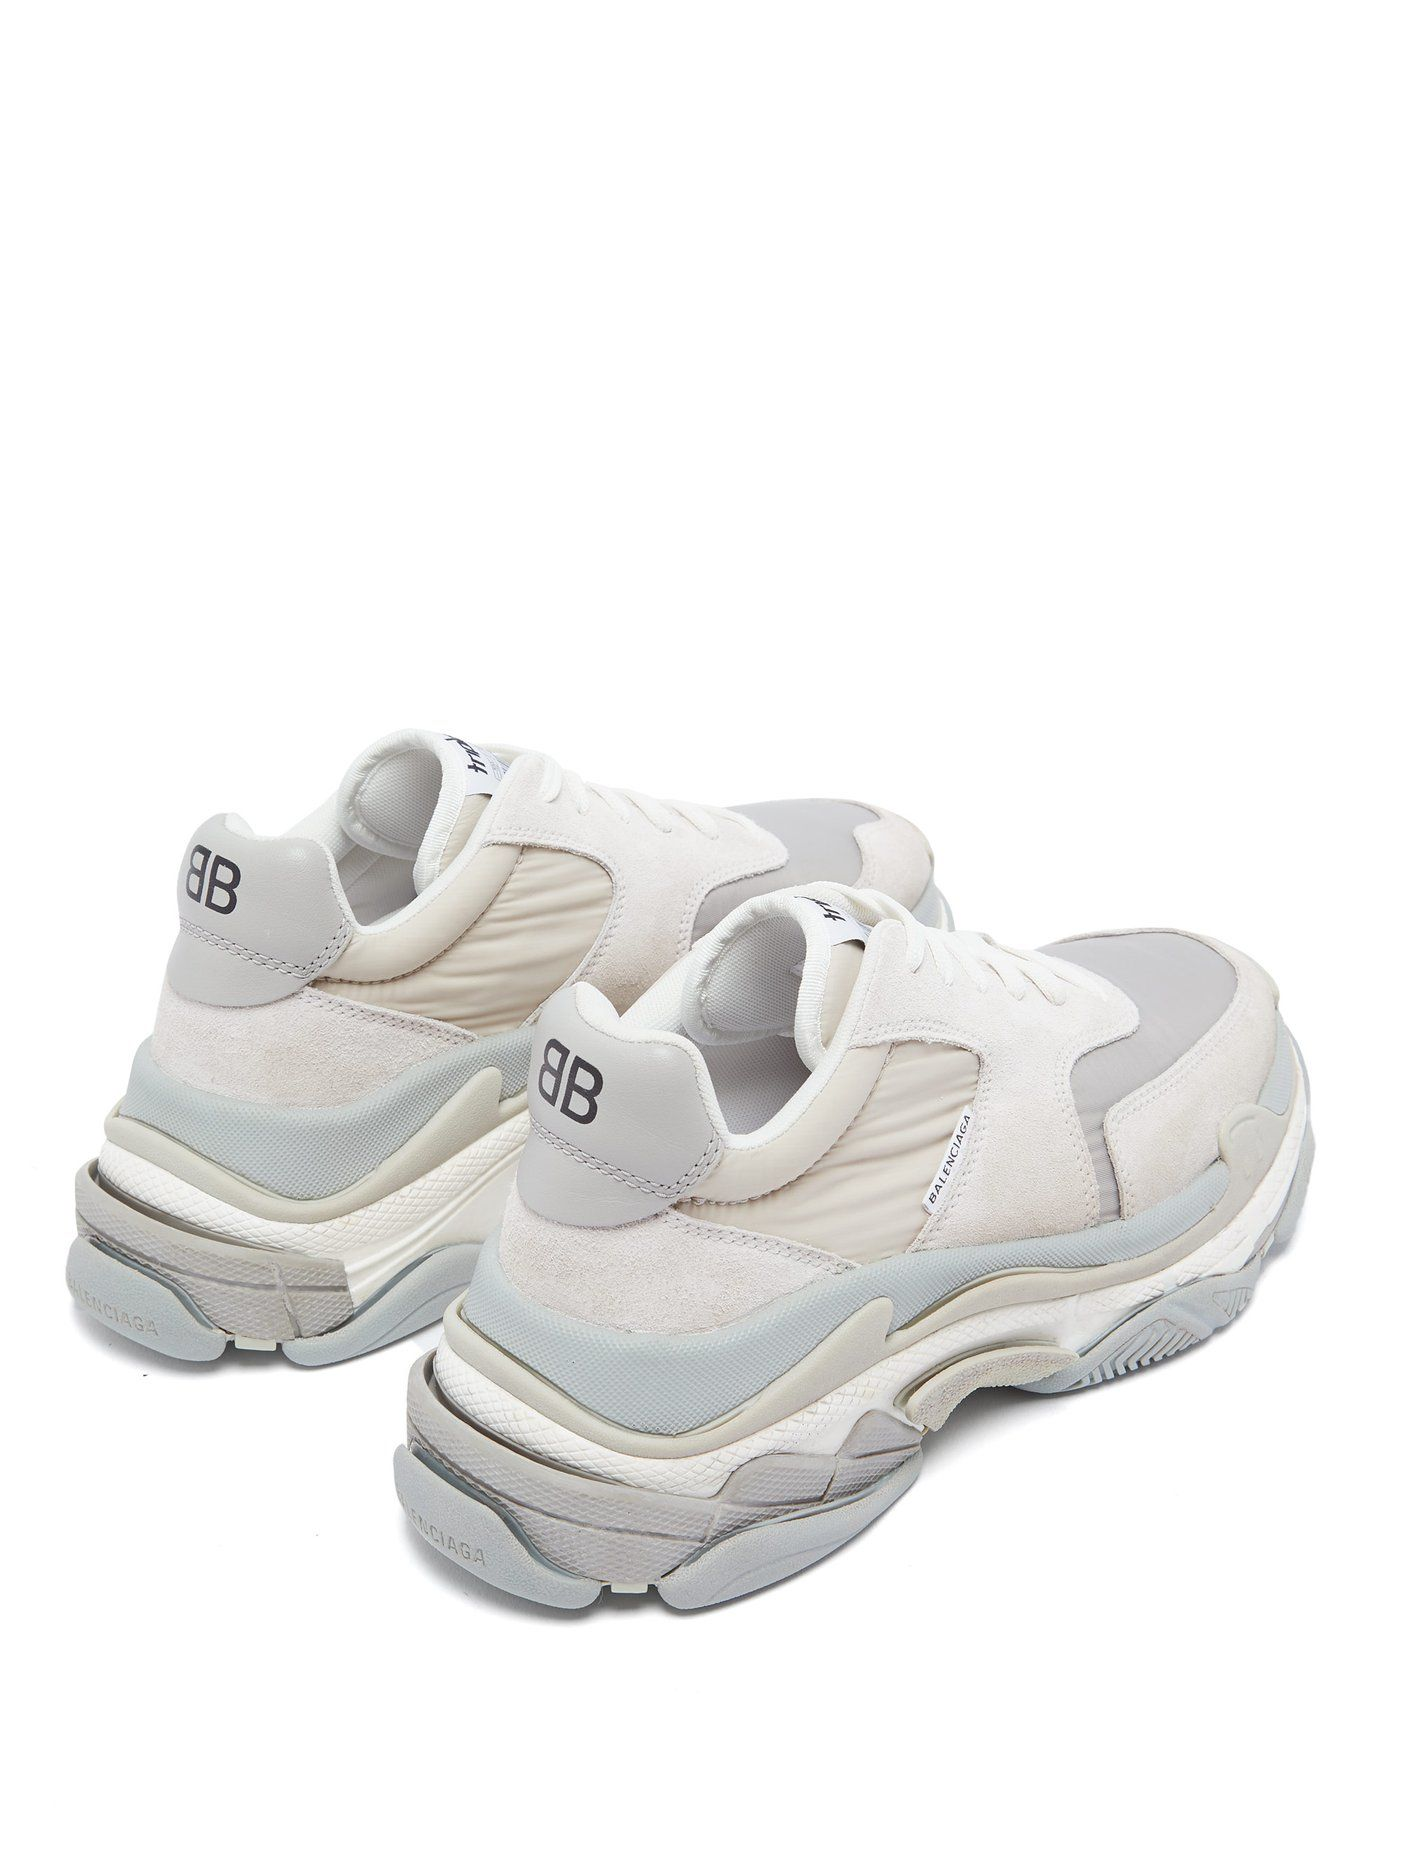 buy popular 0ce88 04c05 ... outlet store 0ef6e 1928c Triple S low-top trainers Balenciaga  MATCHESFASHION.COM